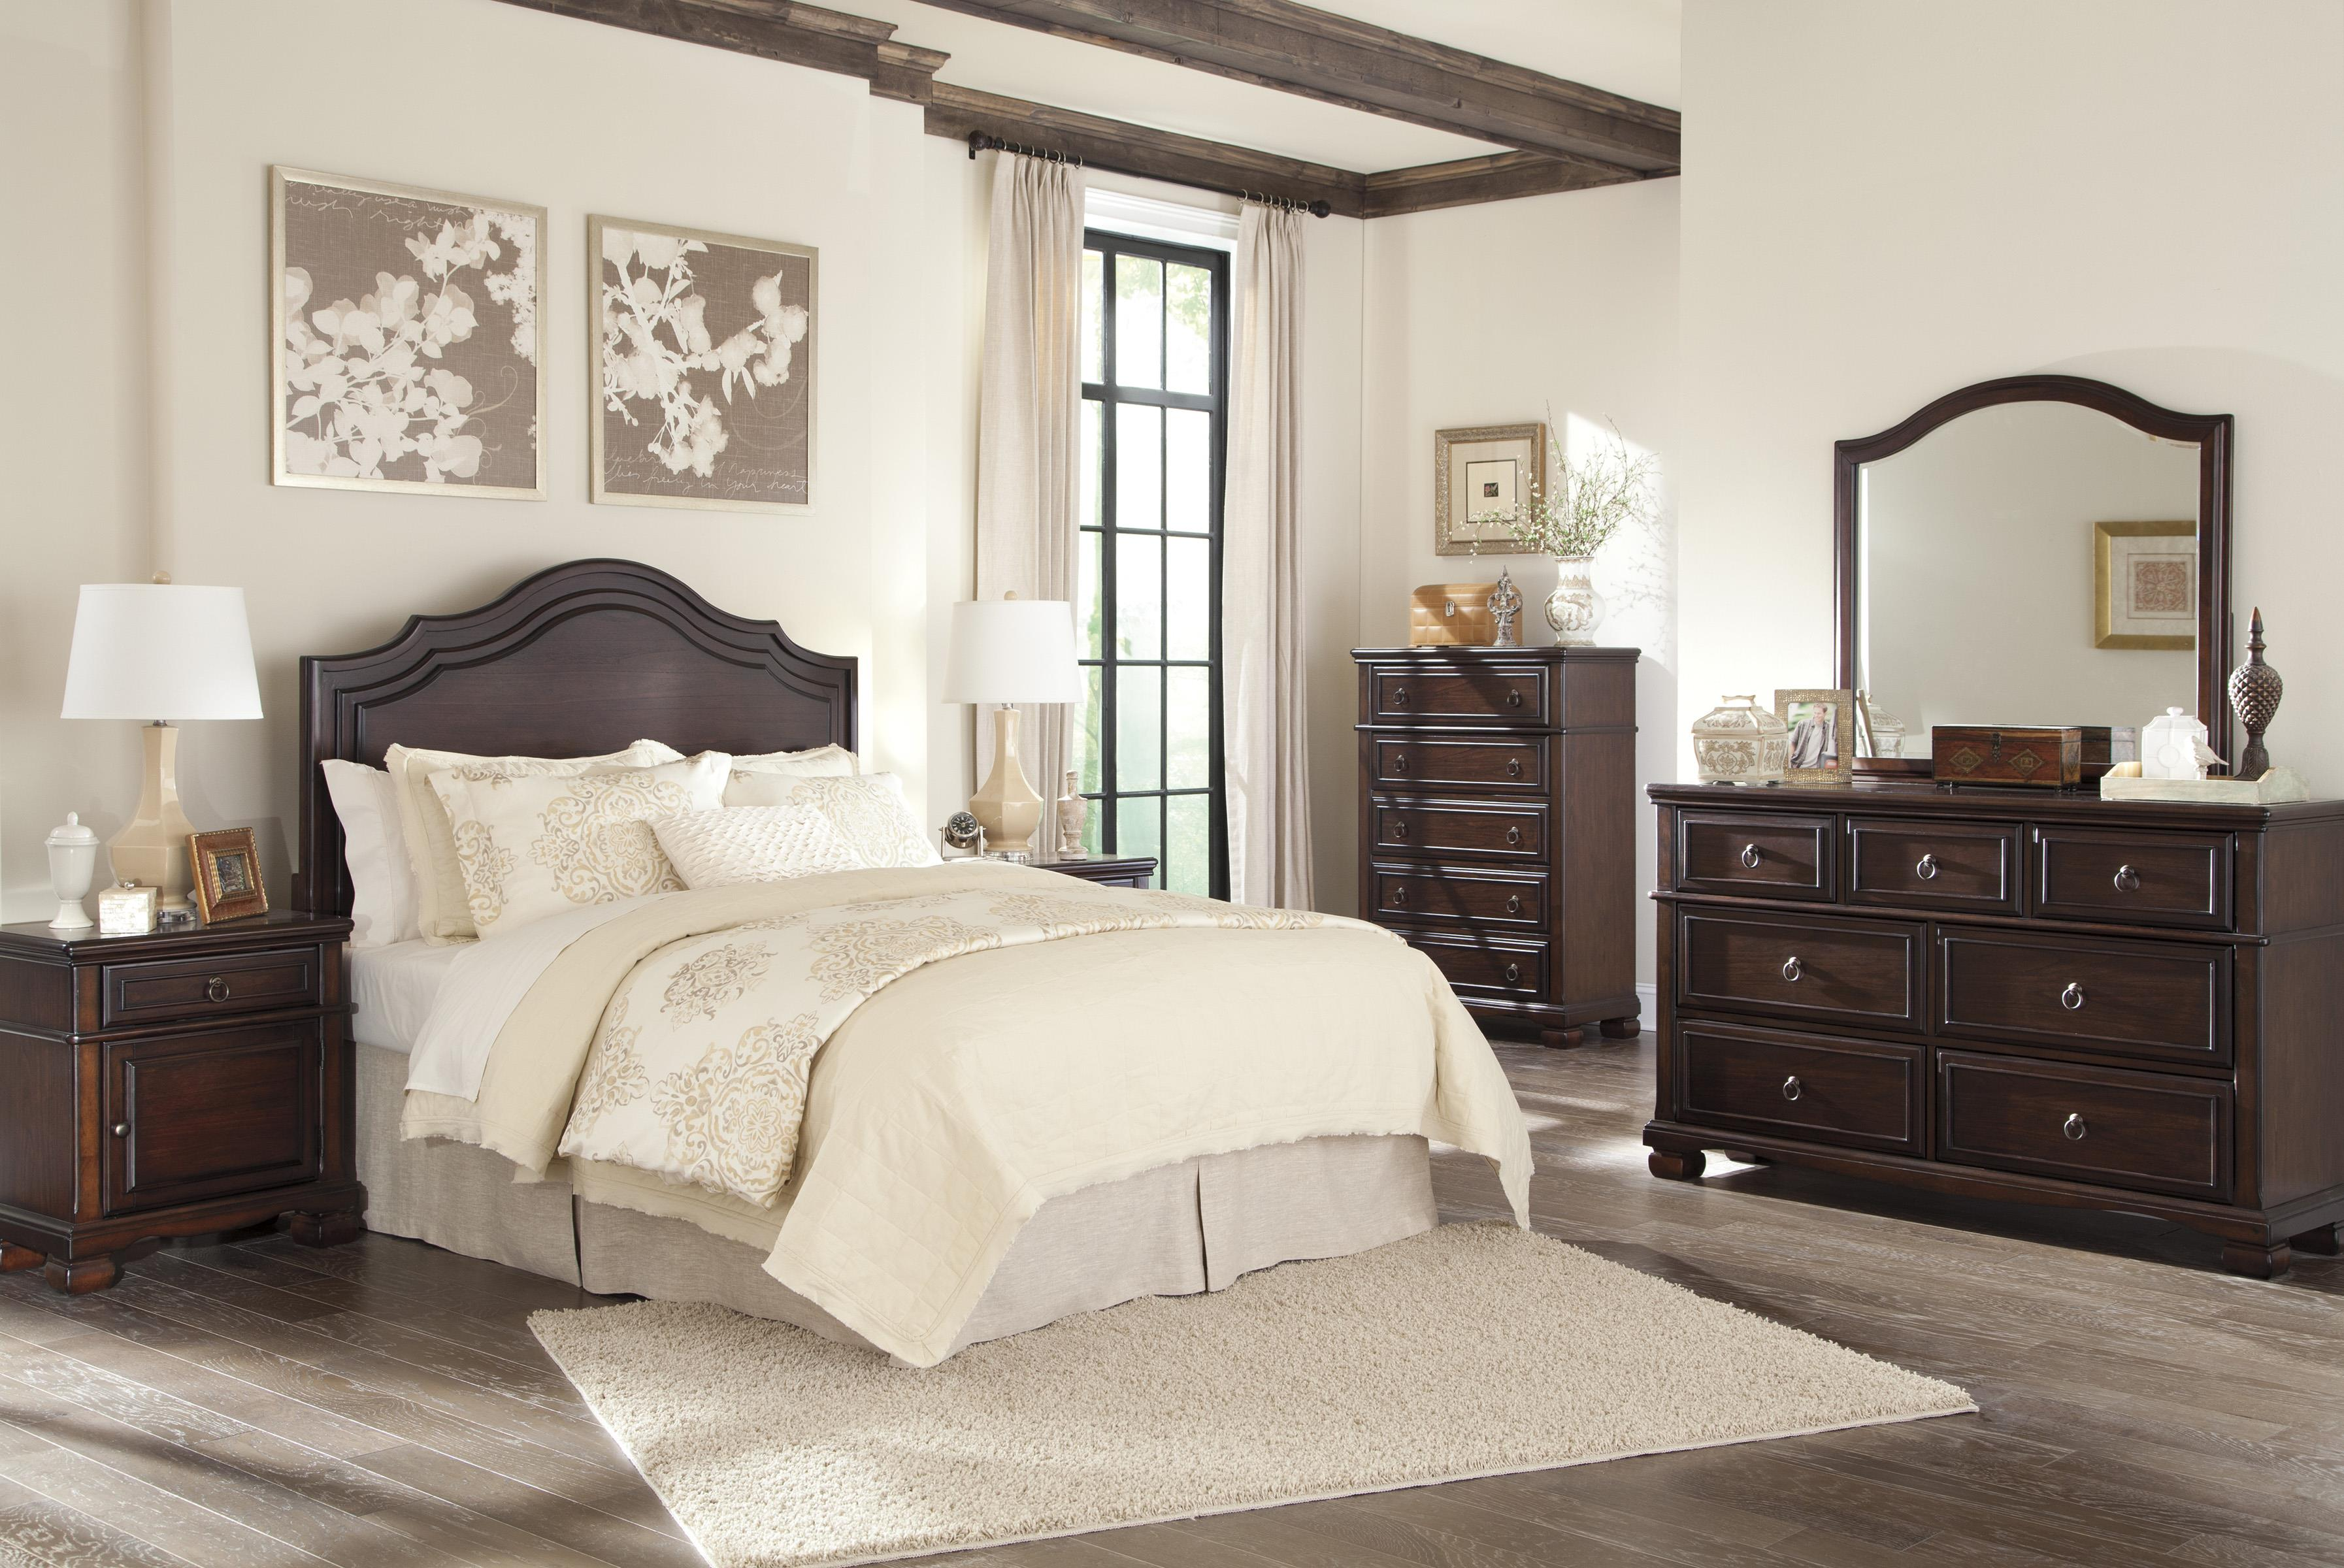 Signature Design by Ashley Brulind Queen Bedroom Group - Item Number: B554 Q Bedroom Group 1